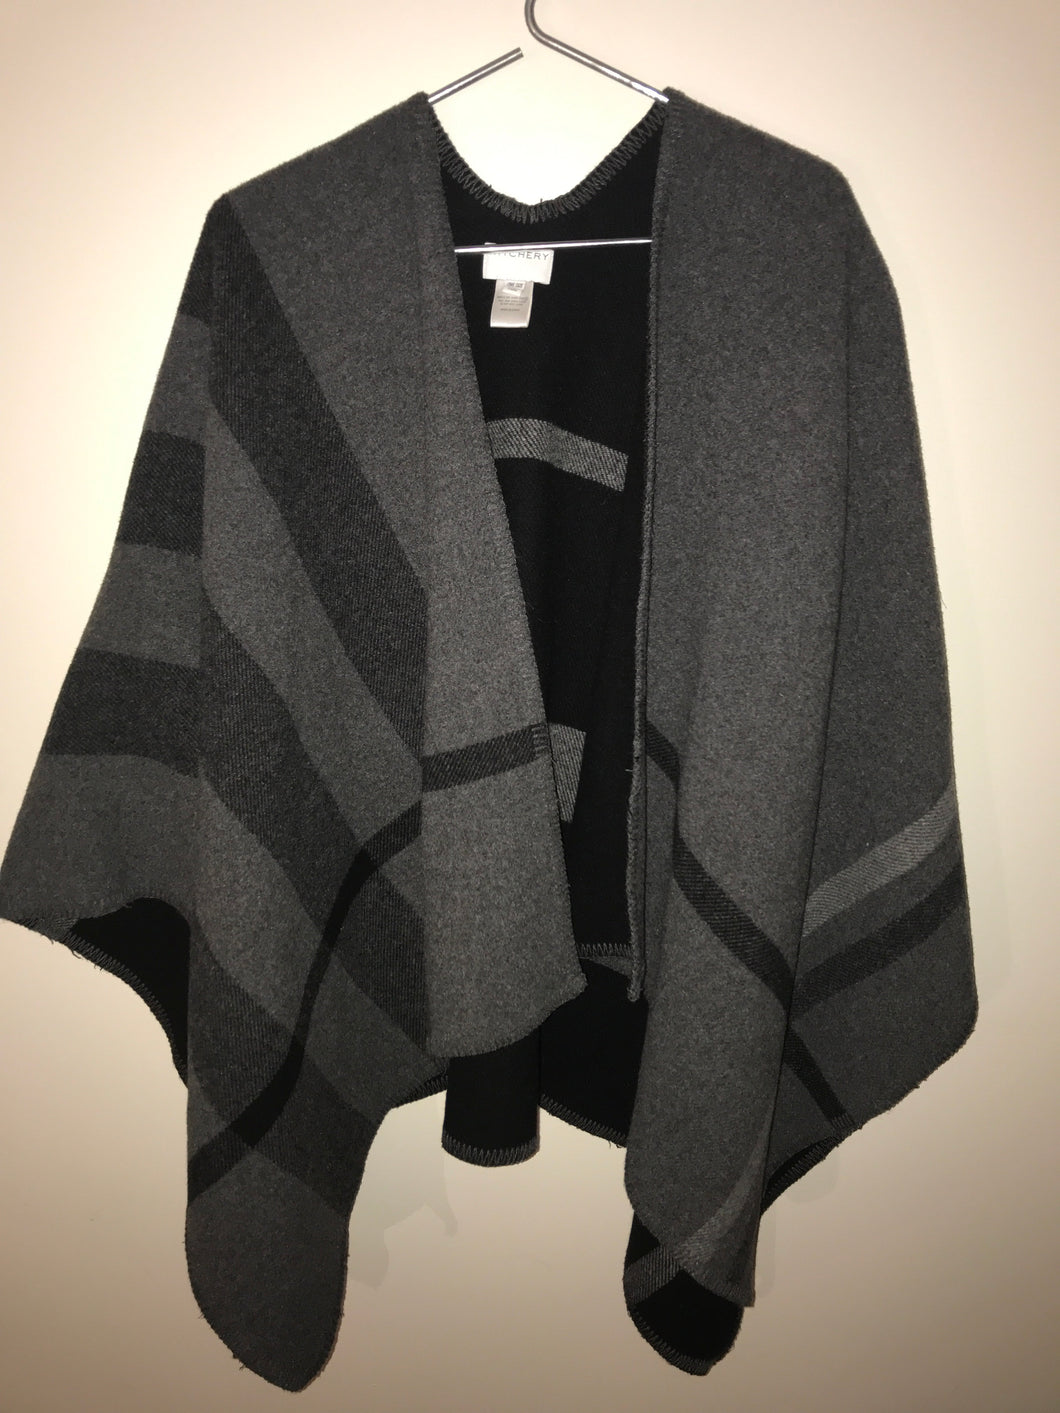 Witchery Black/grey wool blend poncho Size One Size fits all